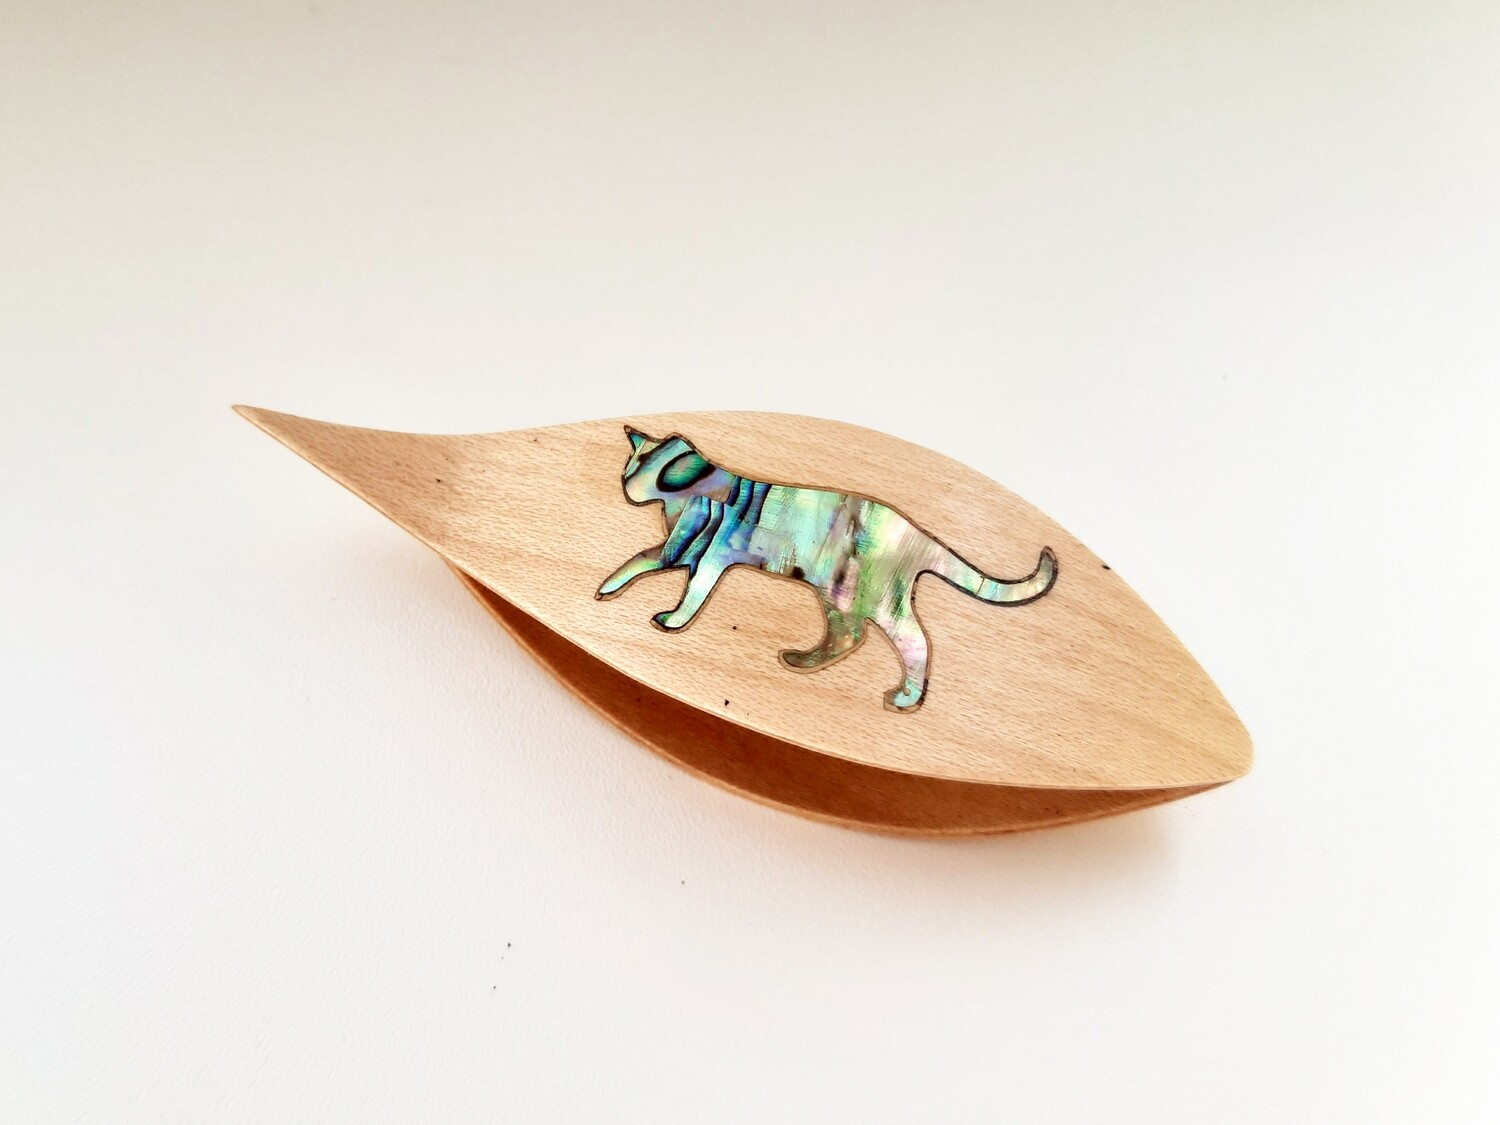 Tatting Shuttle With Pick Maple Mother-of-Pearl Cat Inlay